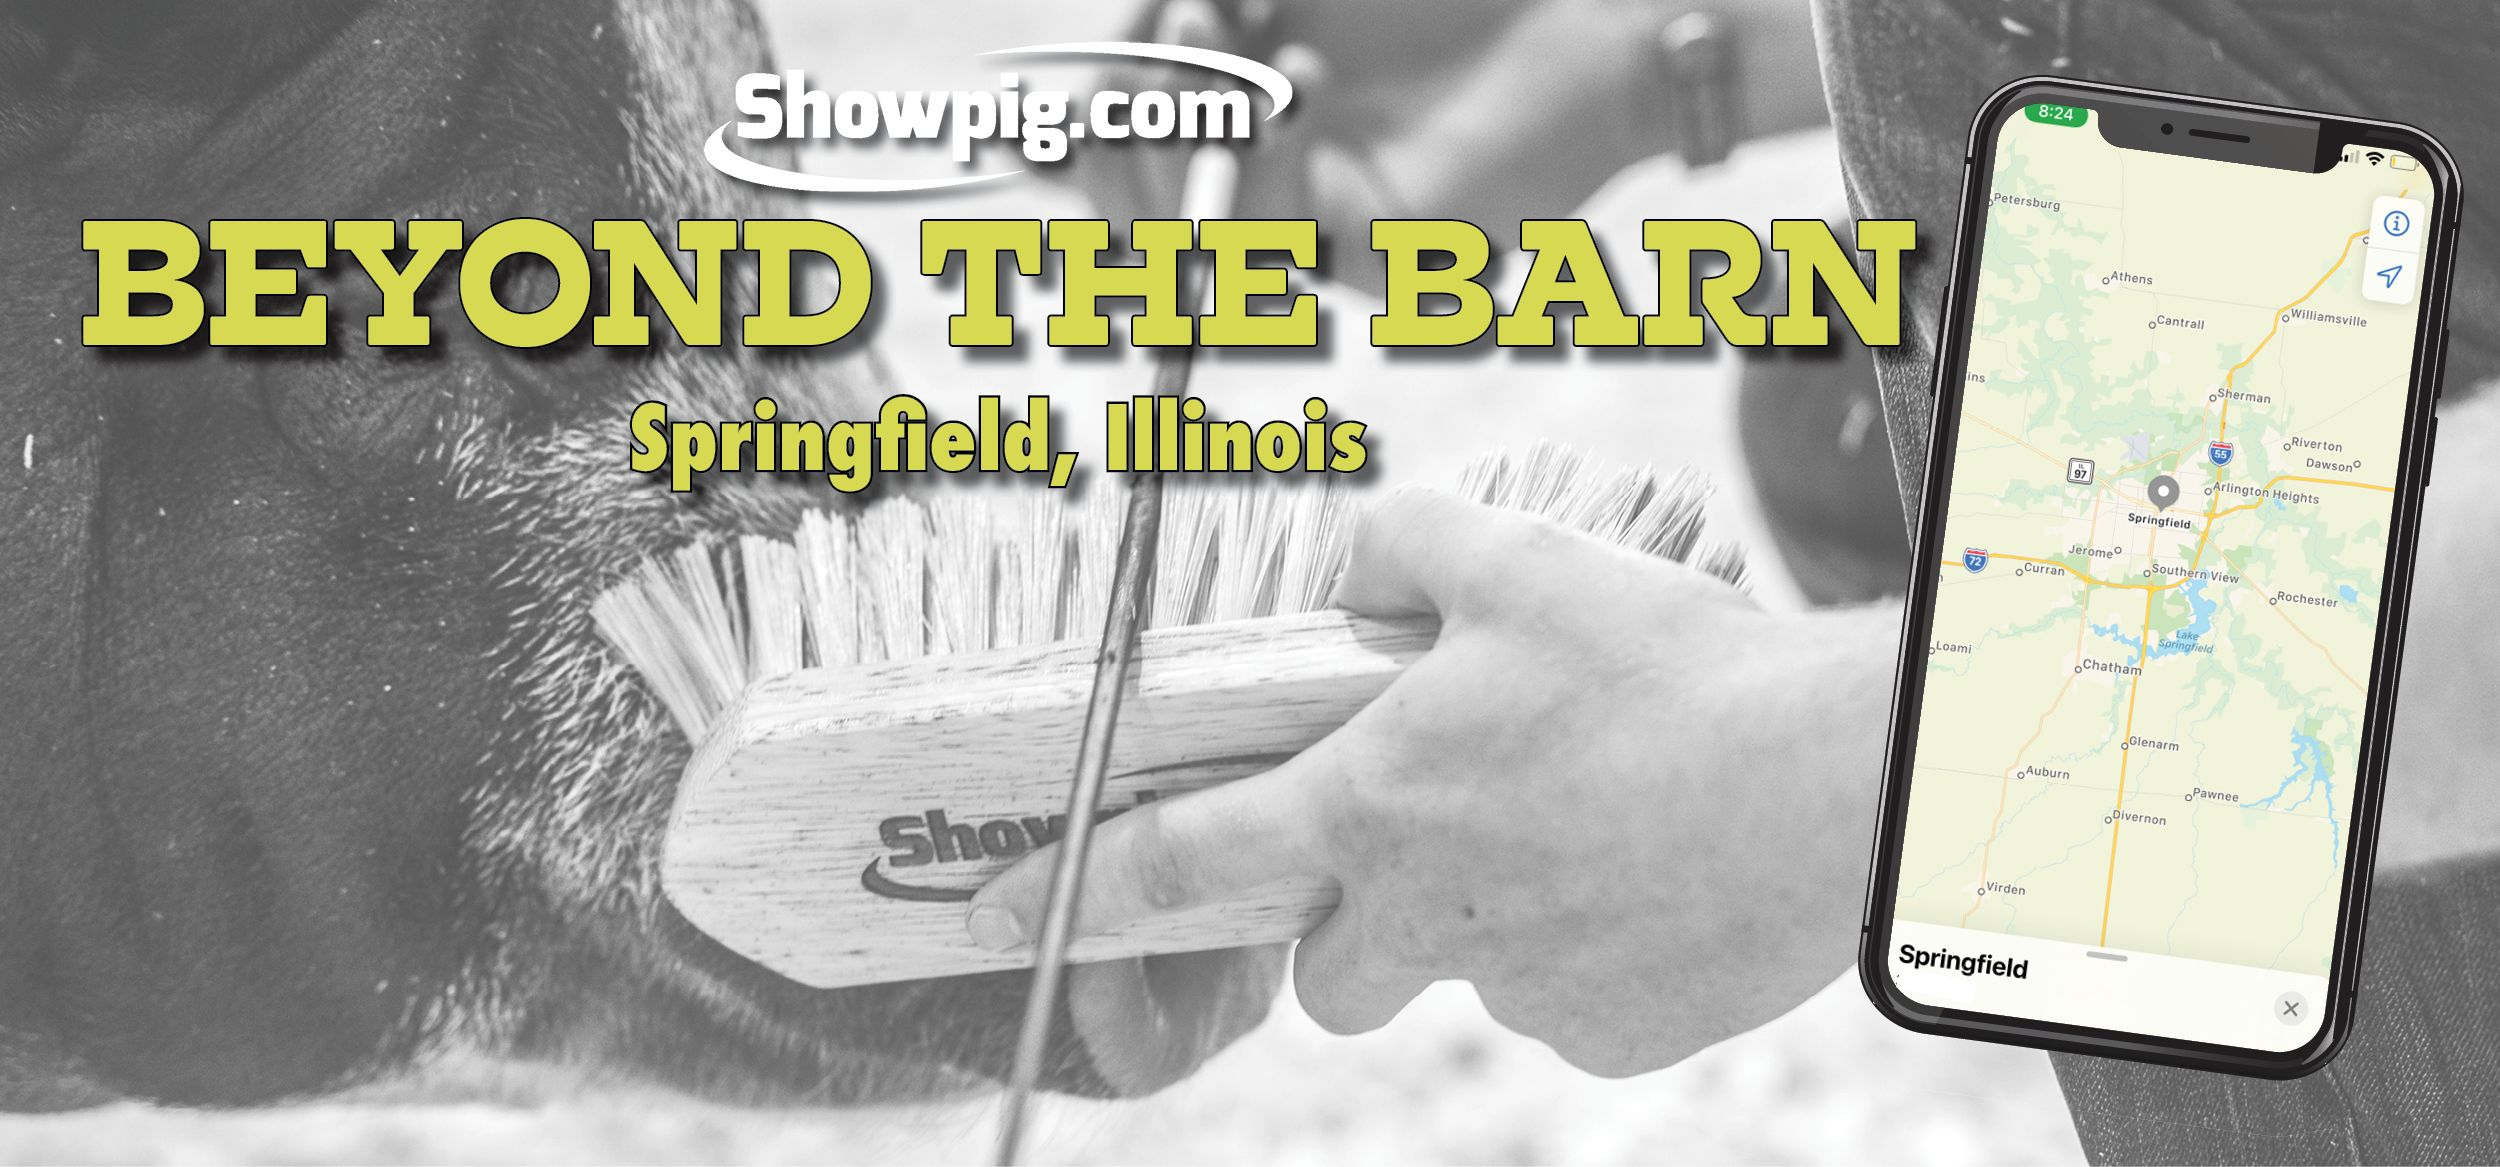 Featured image for the article titled Beyond the Barn: Springfield, Illinois